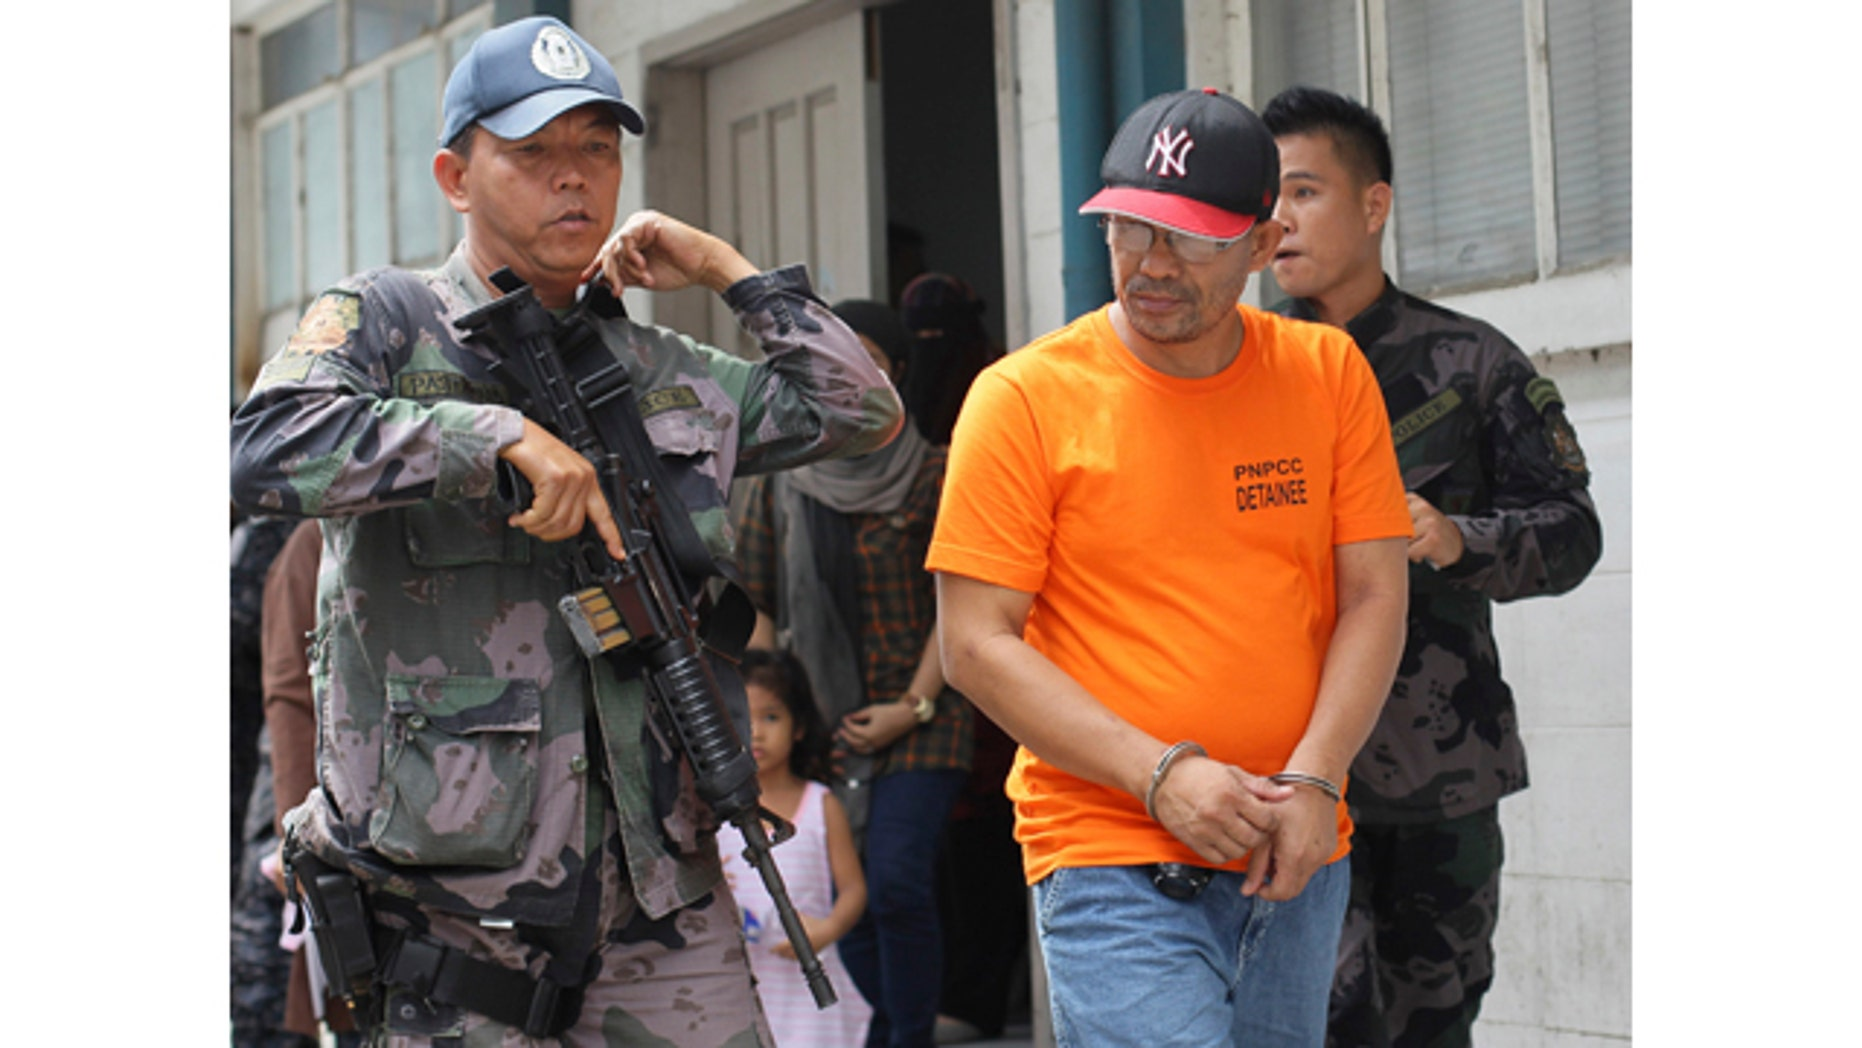 June 20, 2014: A Philippine police officer escorts Abu Sayyaf extremist group leader Khair Mundos, right, after his arraignment at courts inside a police camp in Taguig City, south of Manila, Philippines.  The captured Abu Sayyaf commander has told investigators that a top Southeast Asian terror suspect, who the military reported was killed in a U.S.-backed airstrike two years ago, is alive and being harbored by a hardline Muslim rebel group in the southern Philippines, a confidential police report said. (AP Photo/Mark Cristino)